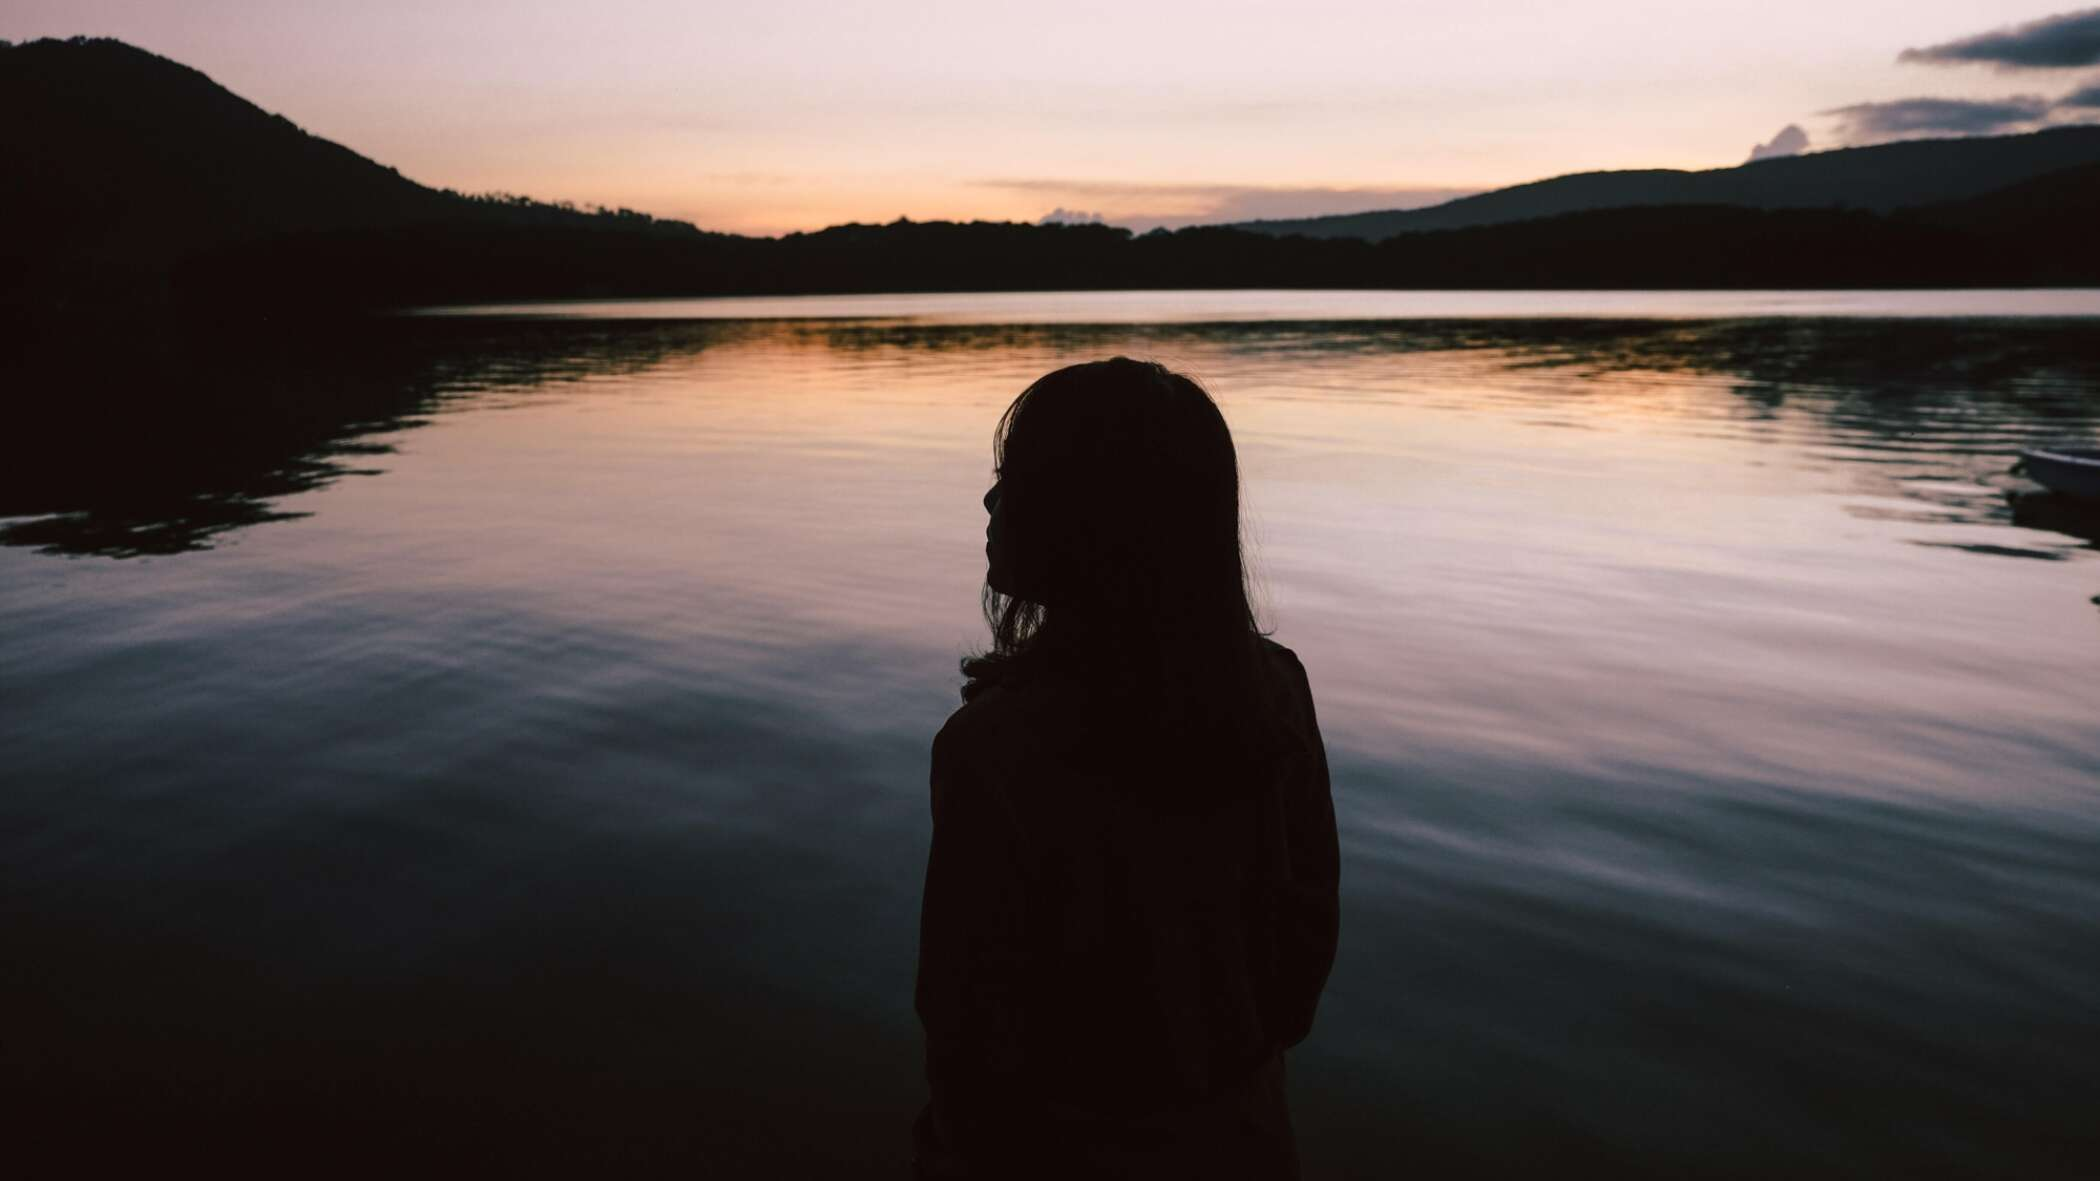 Woman silhouetted against the sunset by a river